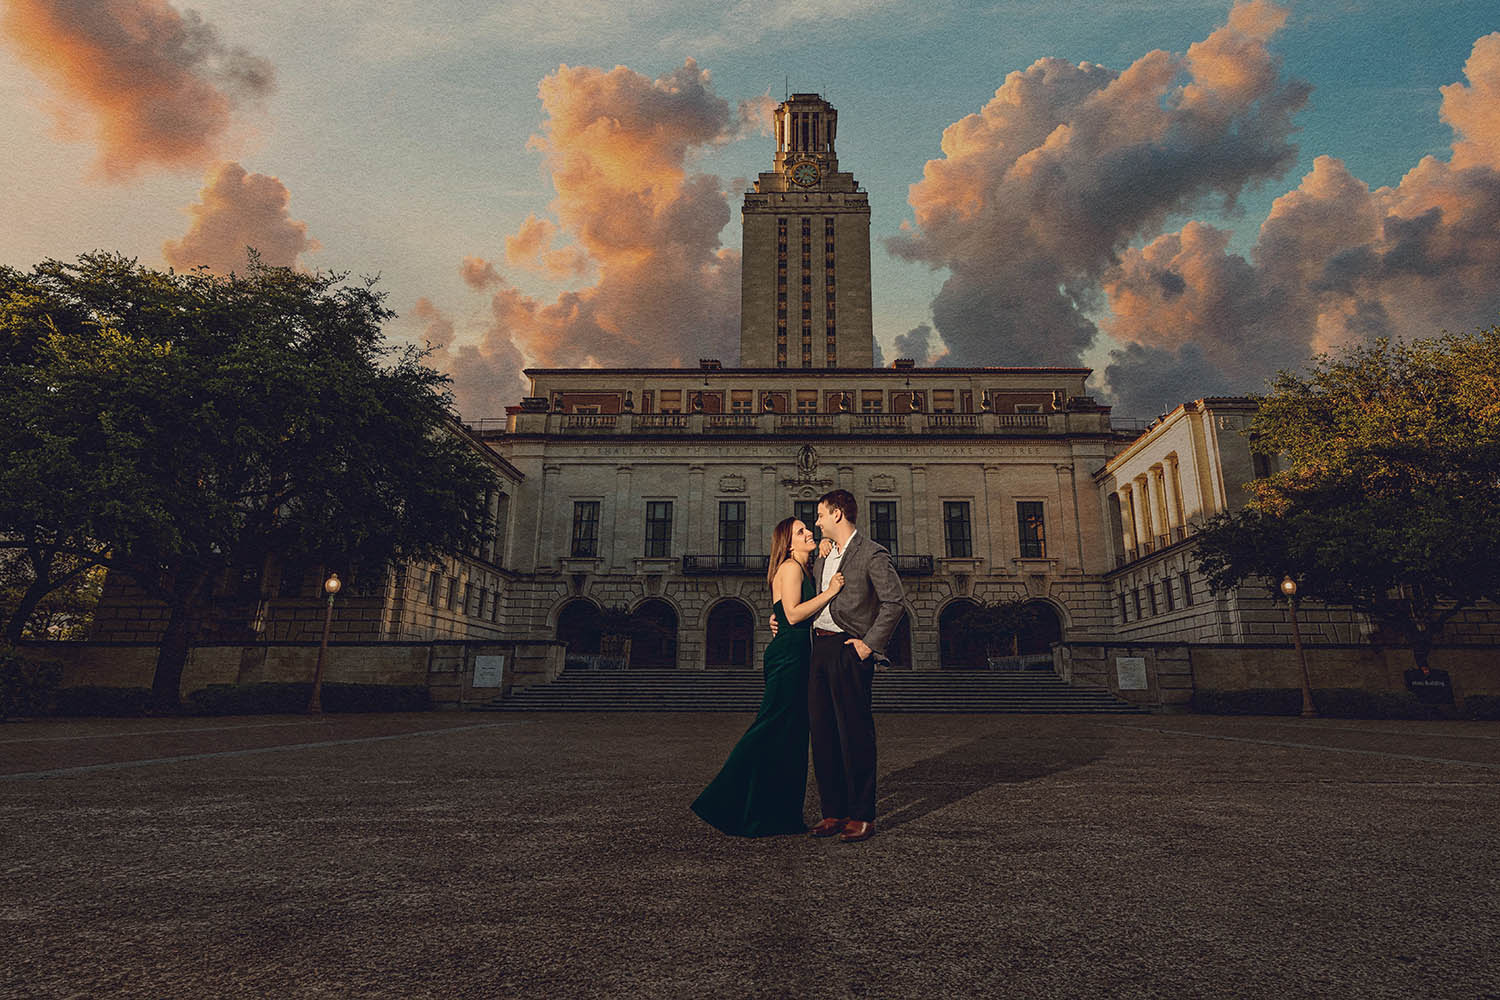 austin-engagement-shoot-ut-tower.jpg